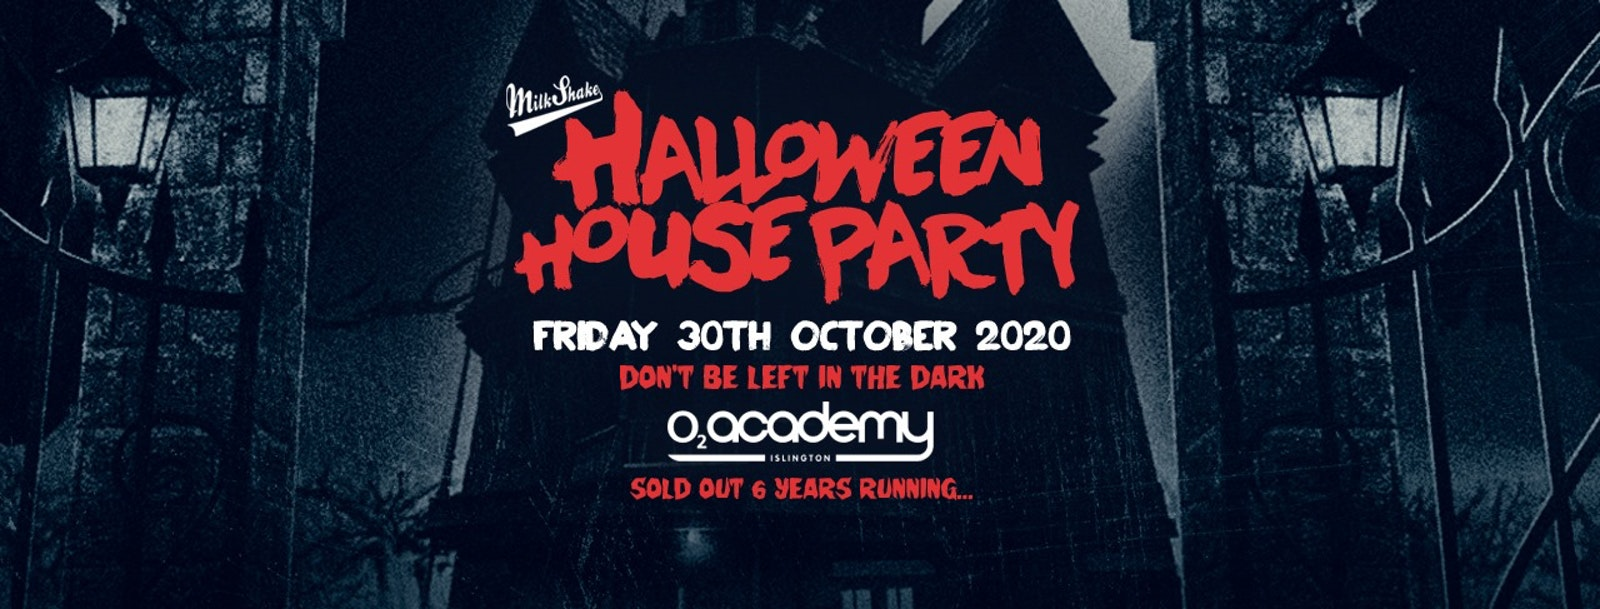 Milkshake Halloween Haunted House Party 2020 – O2 Academy Islington | Friday October 30th